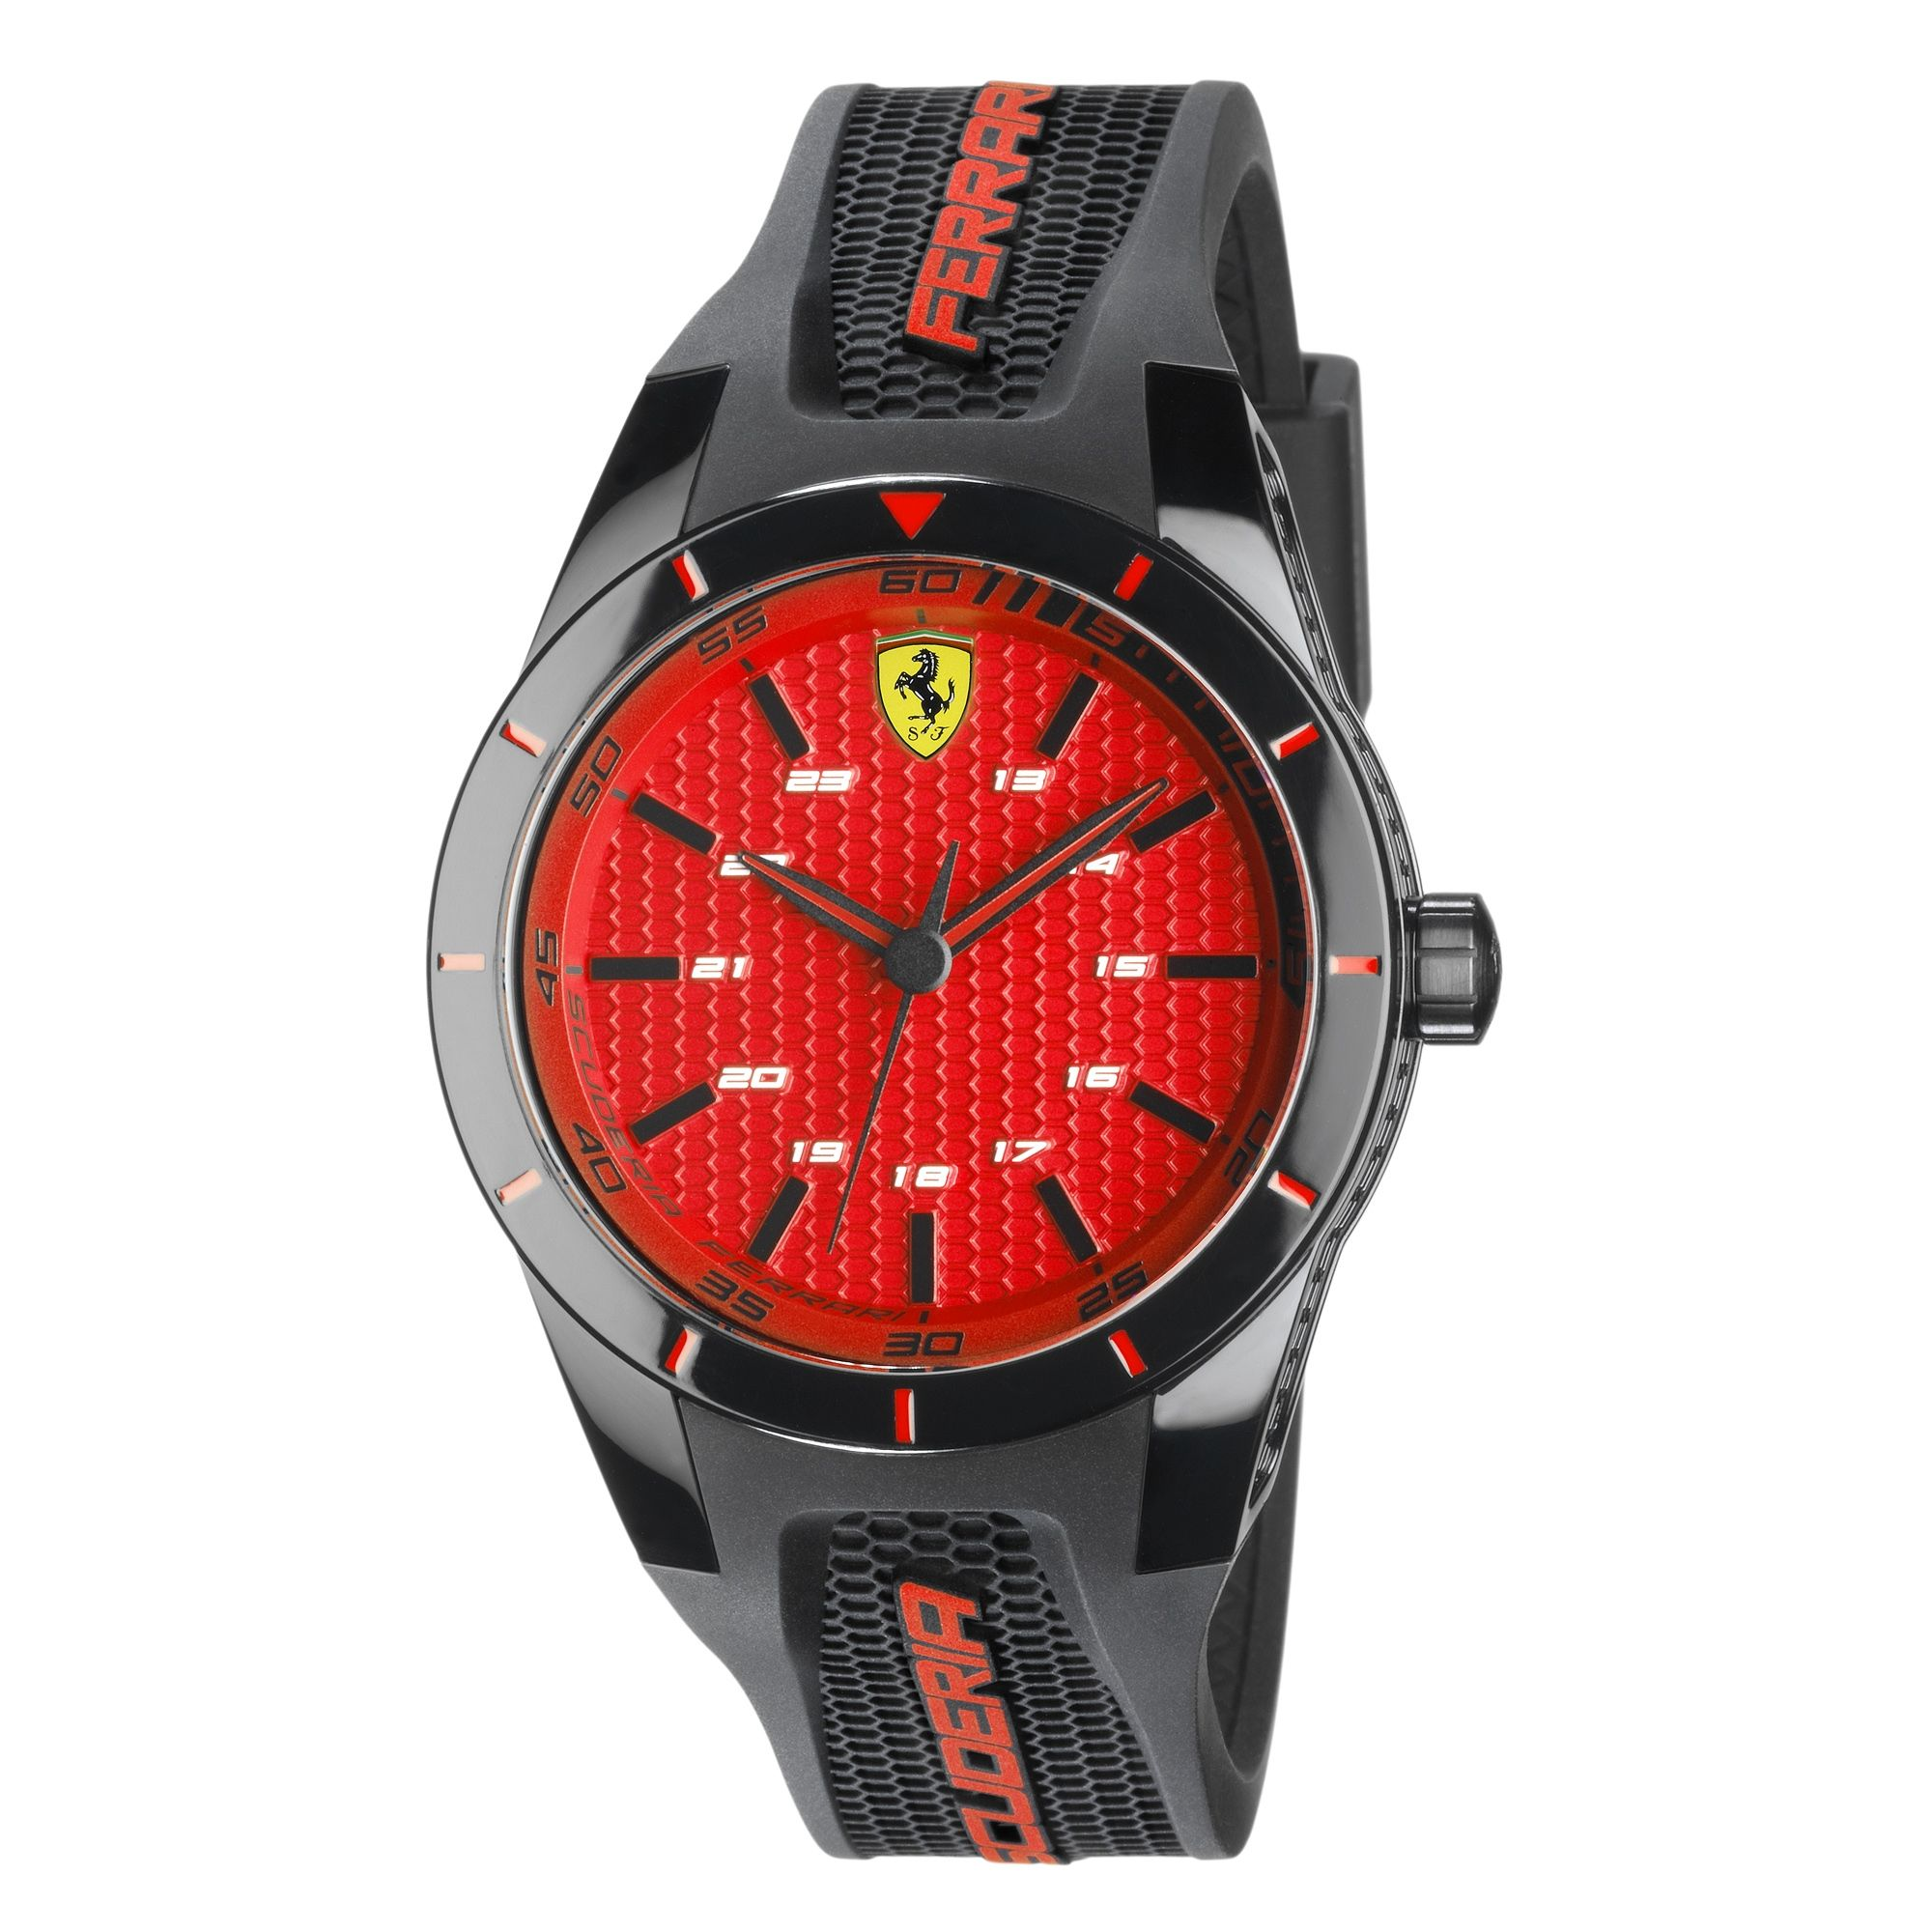 A Ferrari Red Dial For A Wrist Watch With Silicone Strap Designed To Allow The Sports Active Man To Wear His Passion Ferrari Watch Watches For Men Wrist Watch